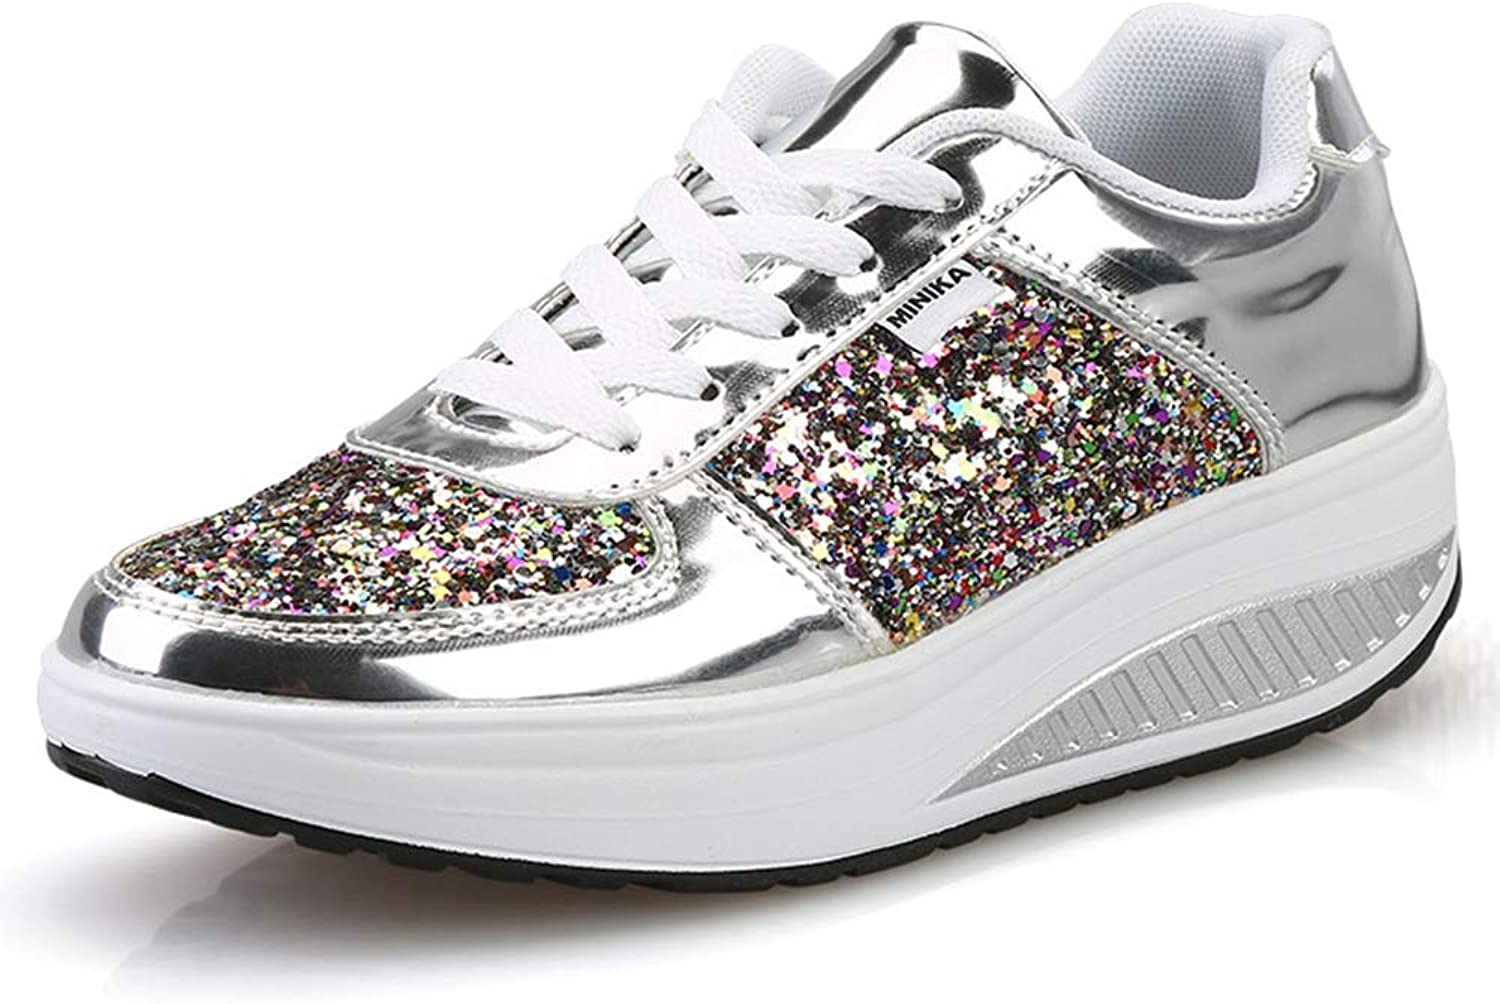 ASO-SLING Women's Wedge Sneakers Casual Comfortable Increased Height Platform Sequined Leather Lace up Walking shoes